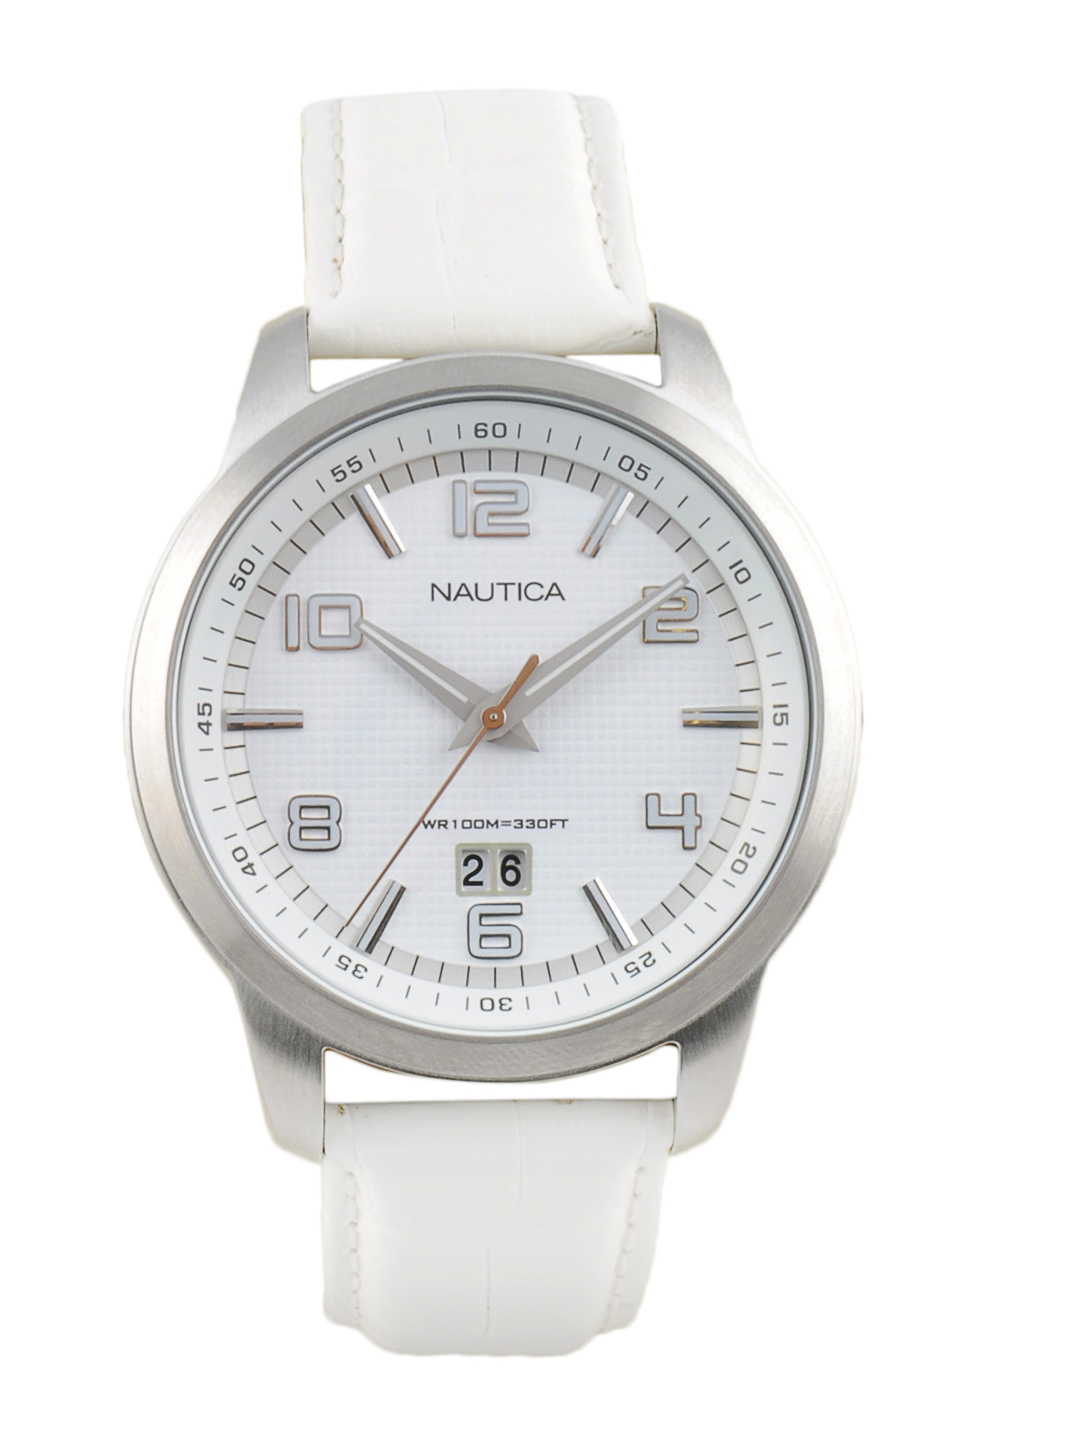 Ceramic Style White Watch